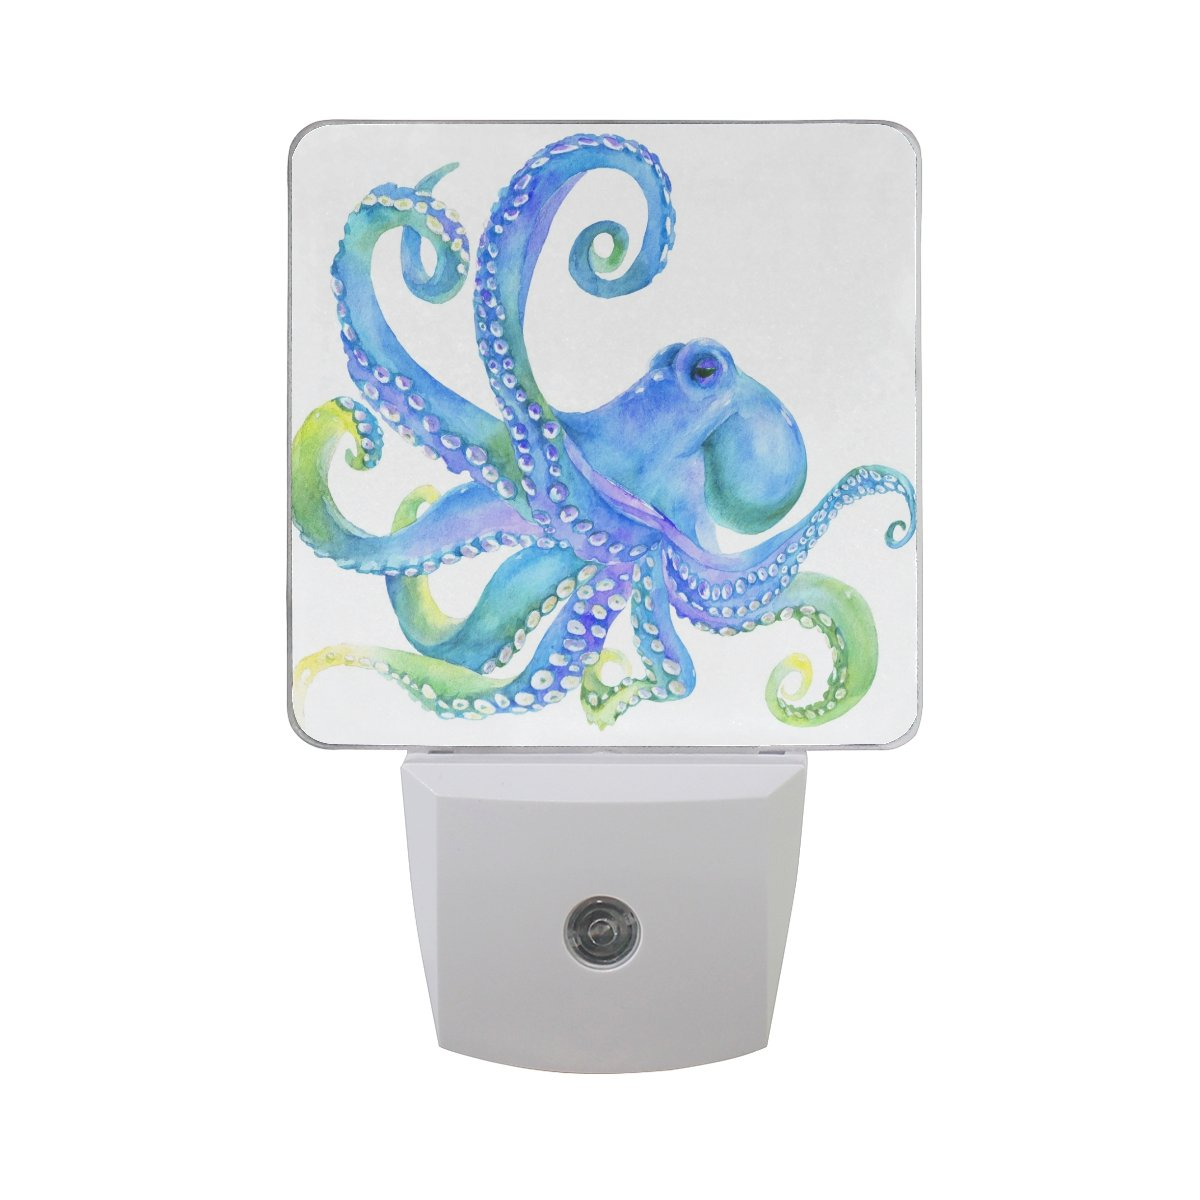 JOYPRINT Led Night Light Watercolor Ocean Sea Animal Octopus, Auto Senor Dusk to Dawn Night Light Plug in for Kids Baby Girls Boys Adults Room